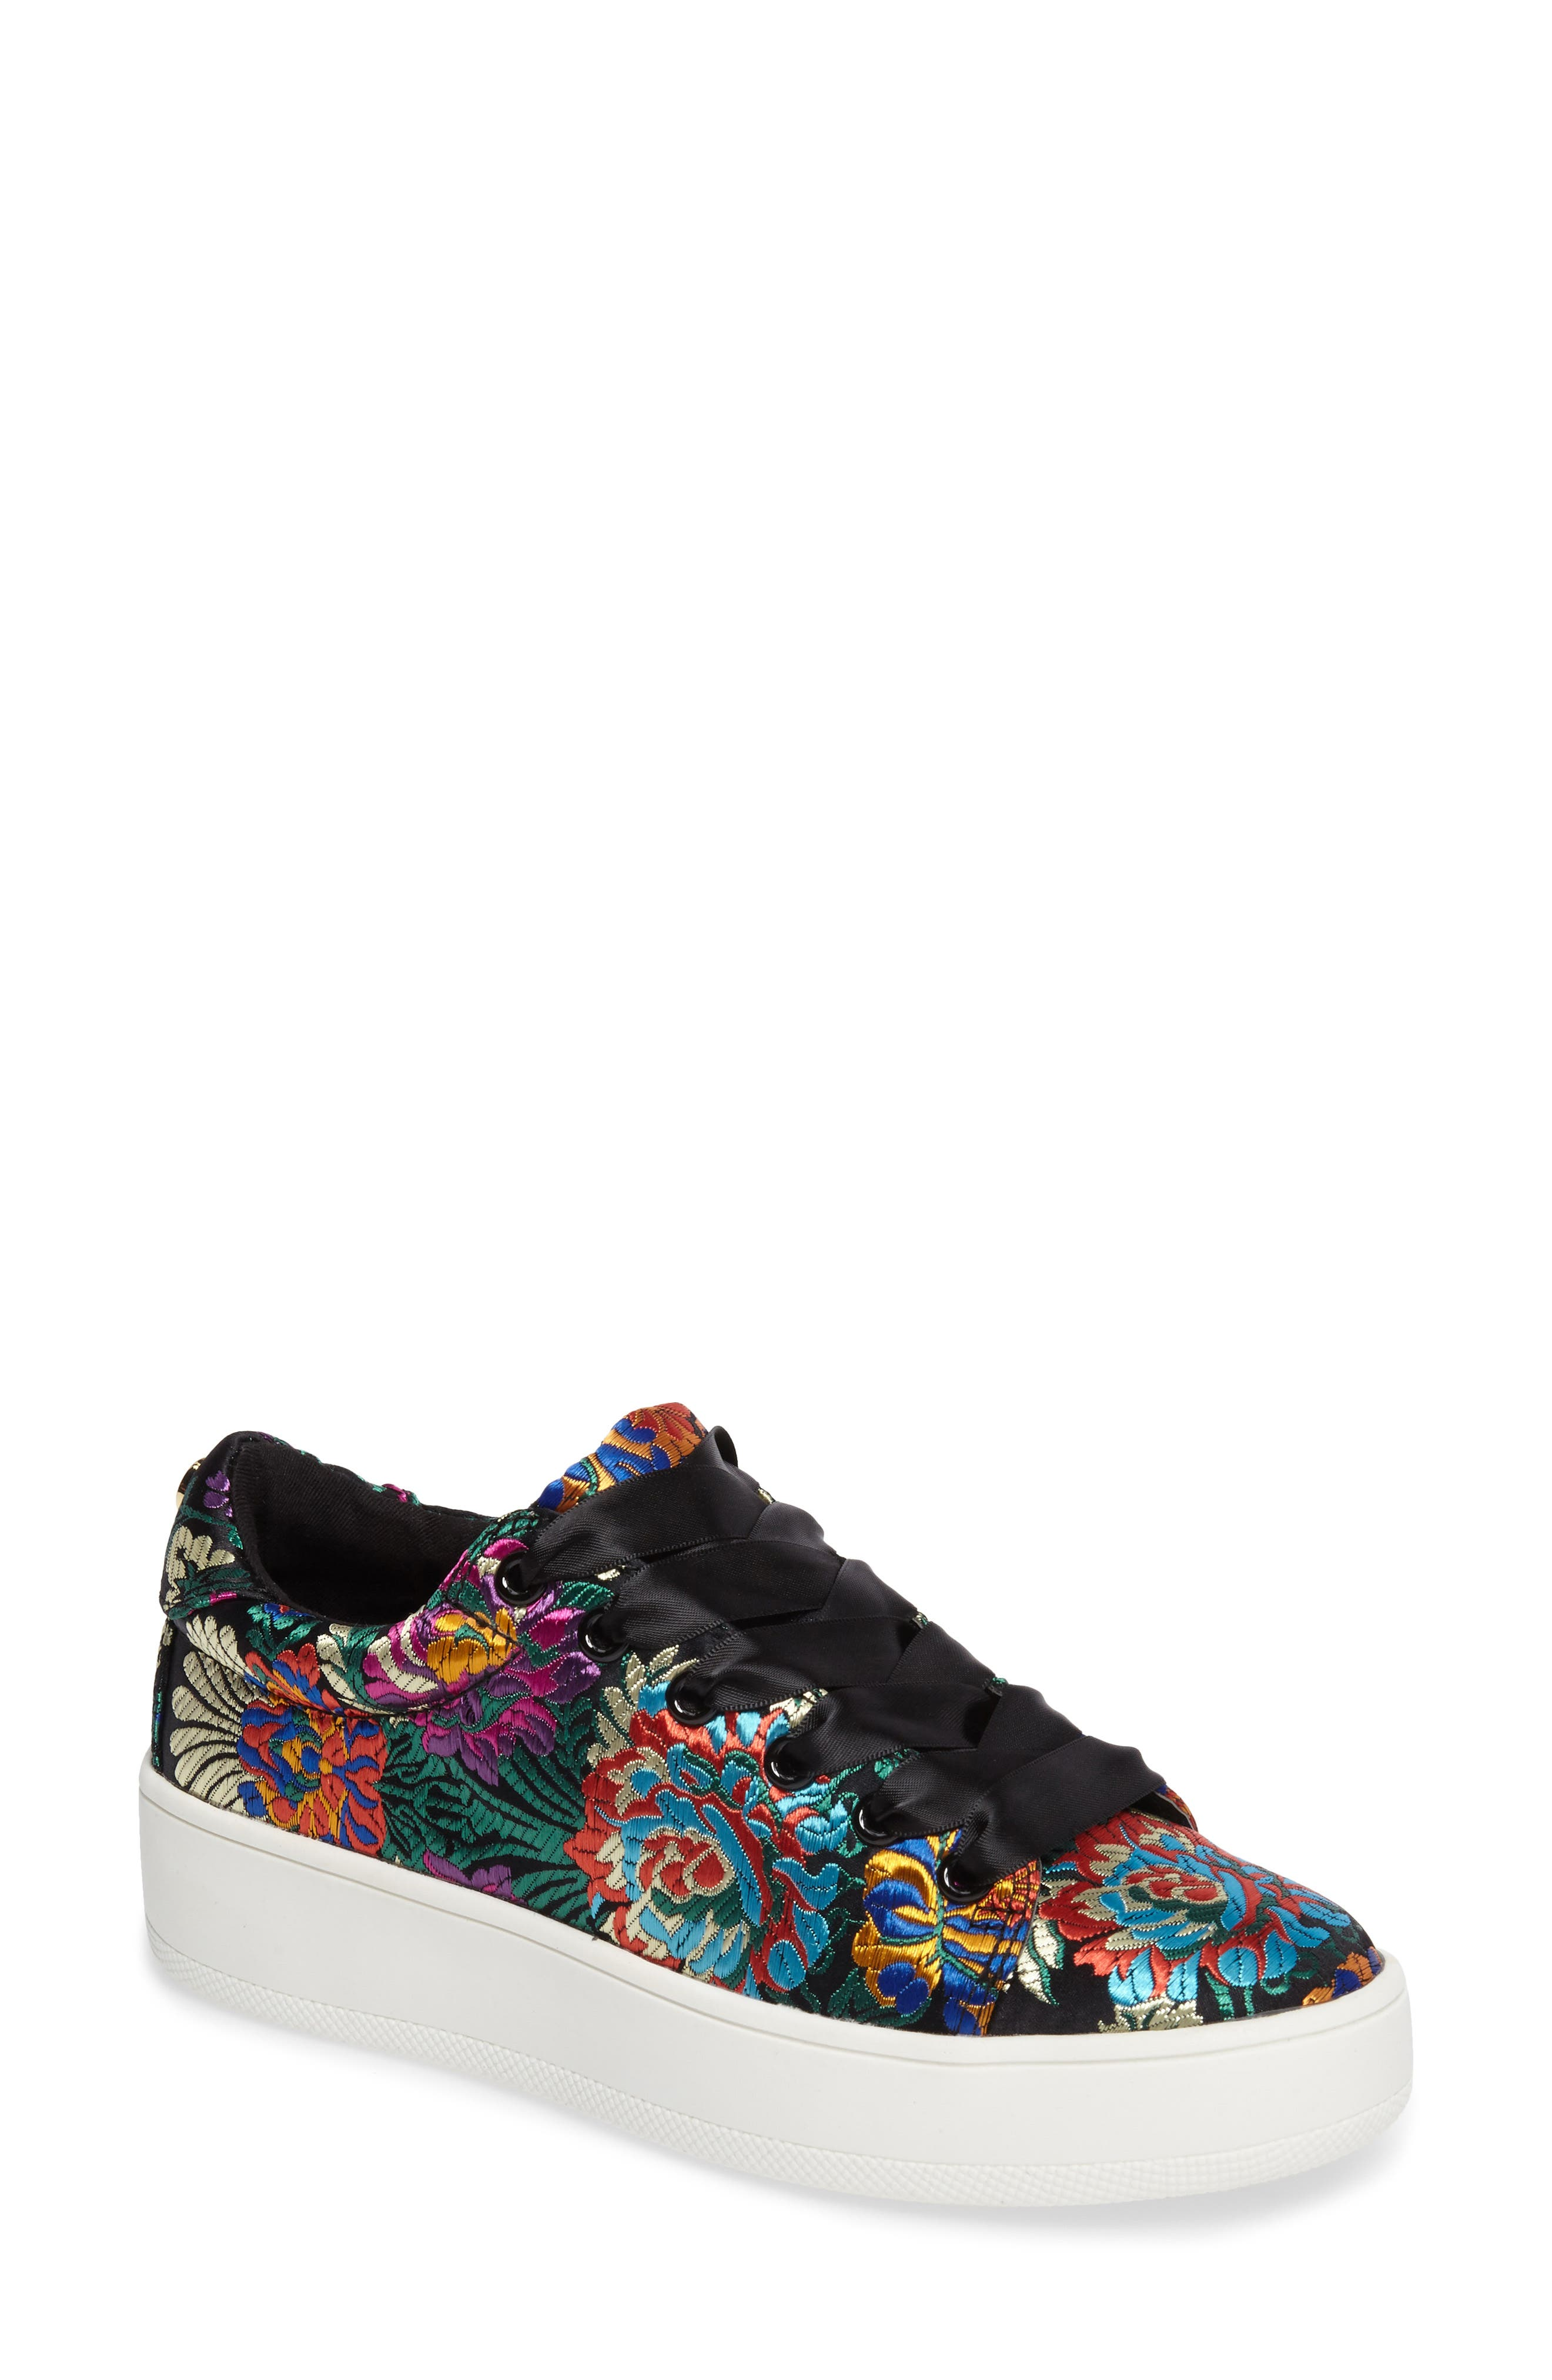 Brody Embroidered Flower Sneaker,                         Main,                         color, Multi